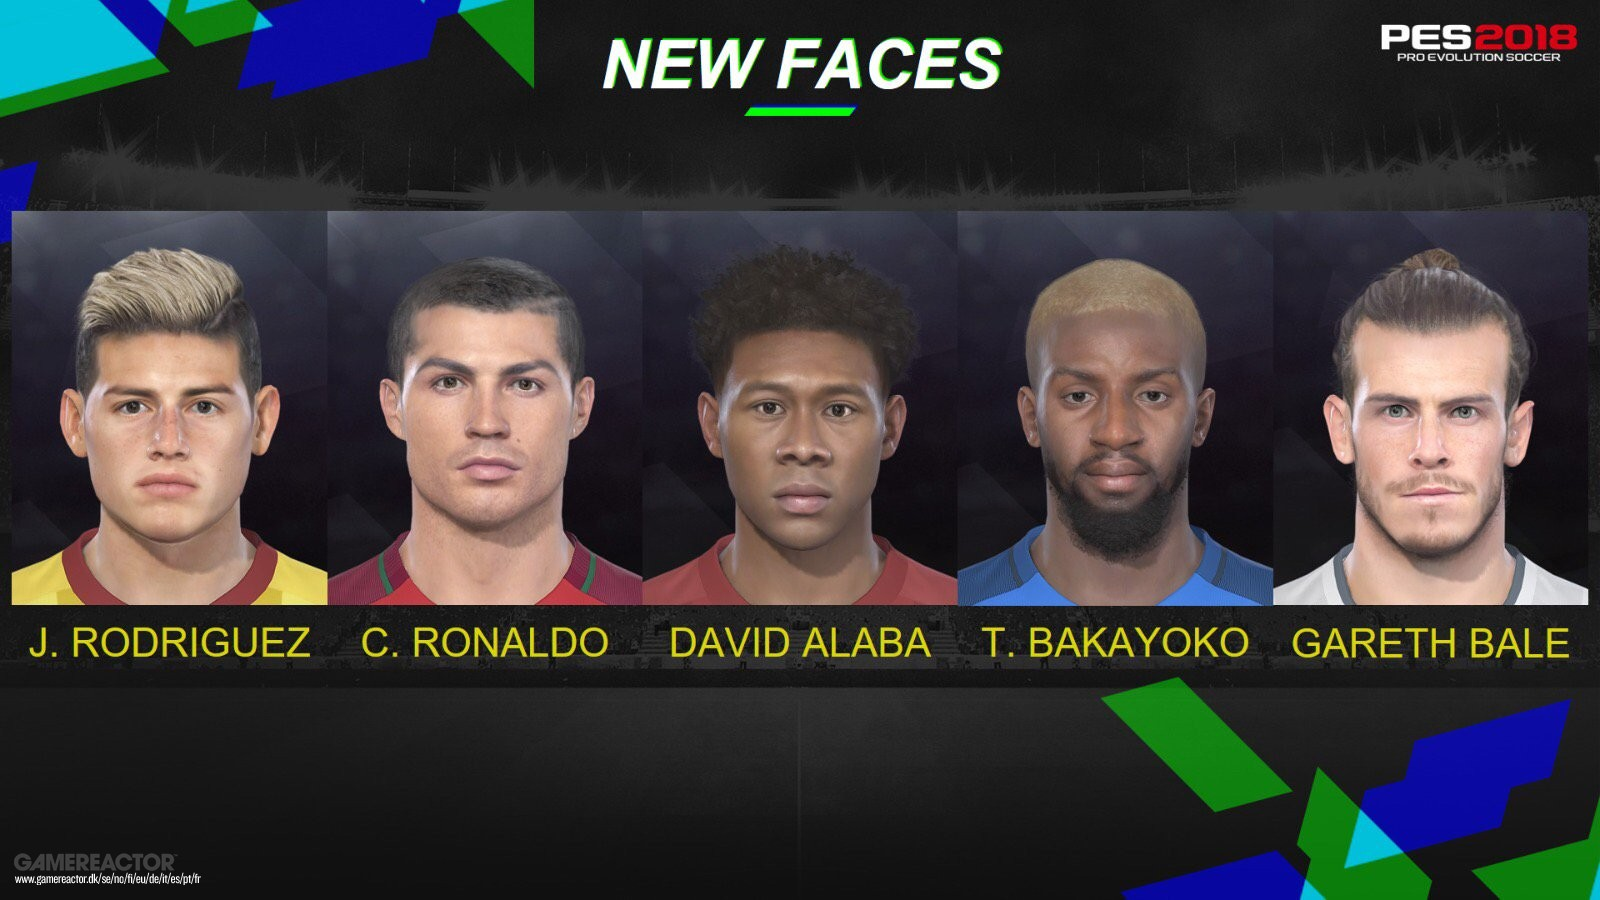 Konami releases PES 2018 faces of Ronaldo, Bale, and more